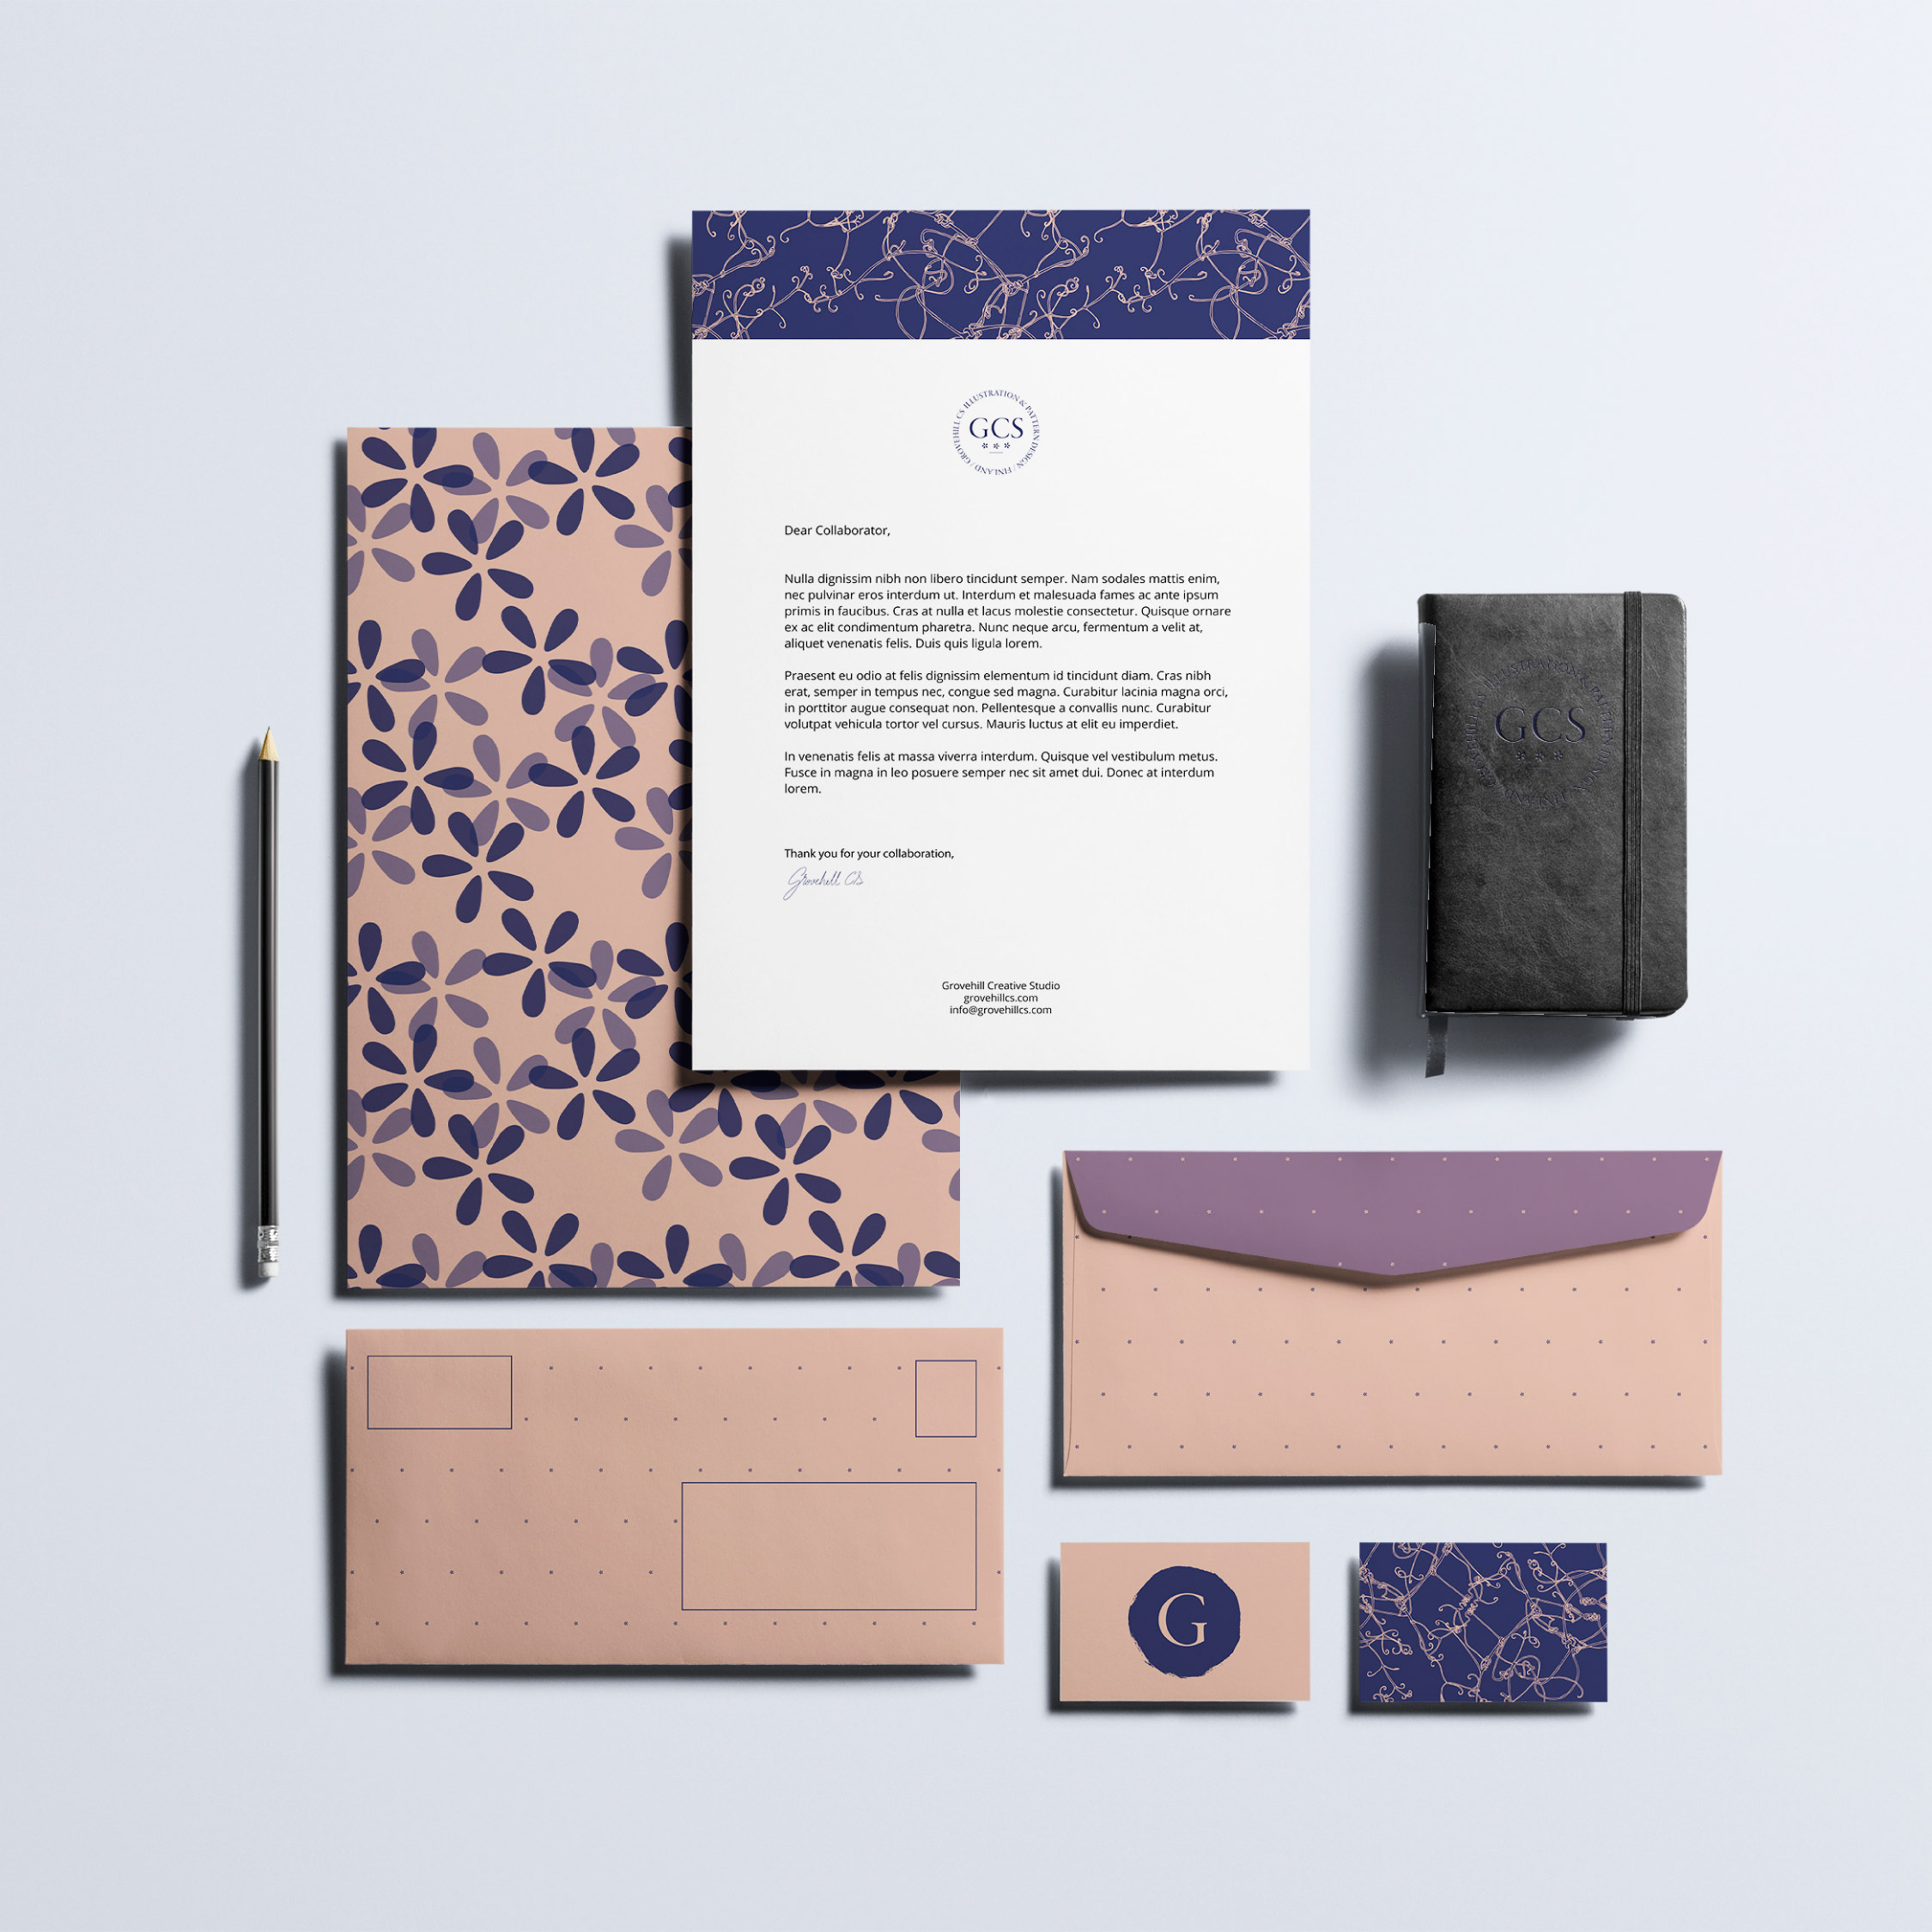 Brand Patterns – Grovehill Creative Studio   A personal project. Holistic brand design for Grovehill Creative Studio.